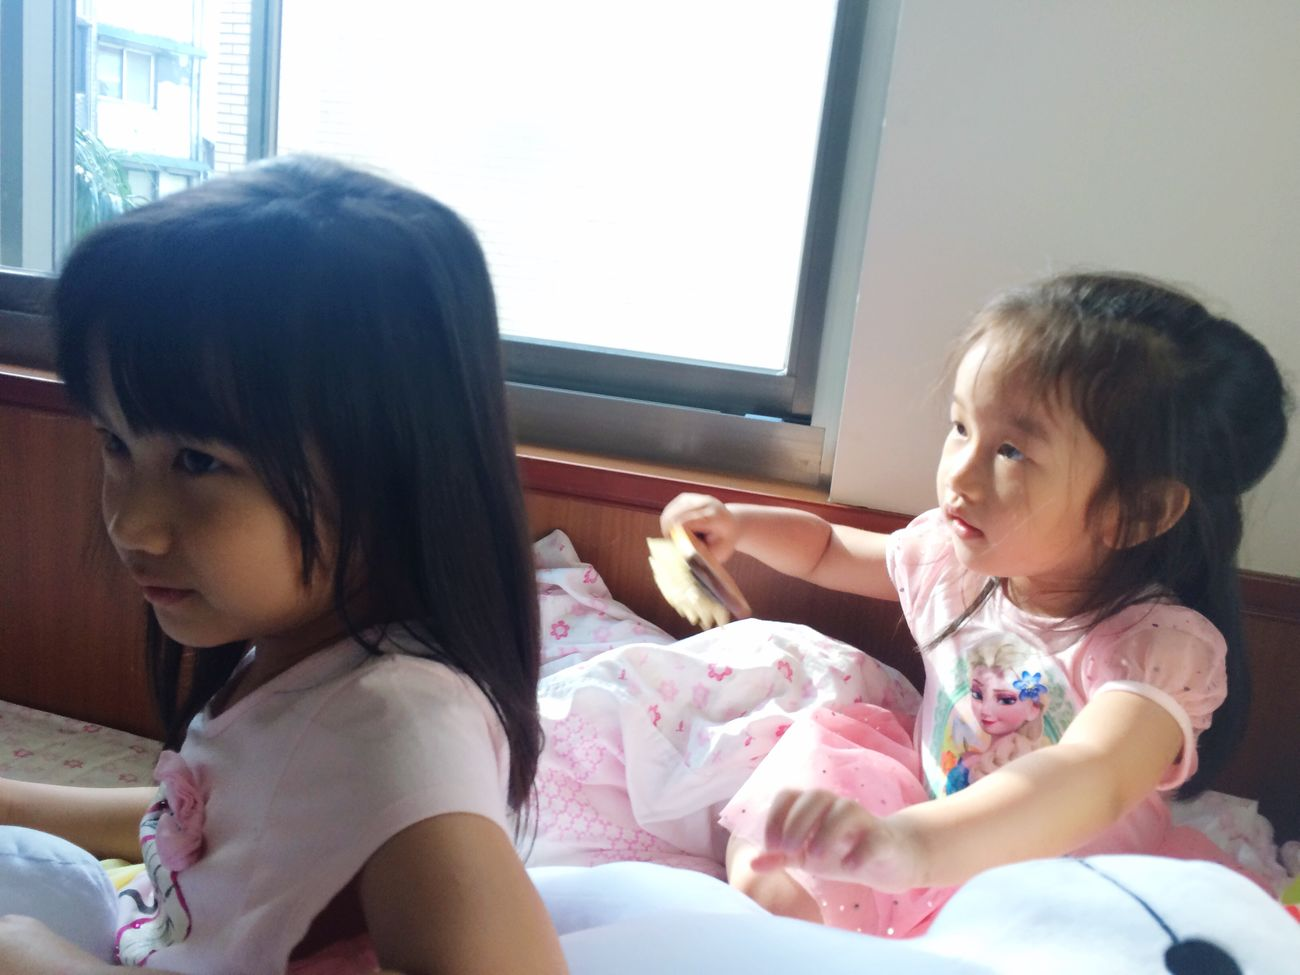 Combing Hair Cousin Love<3 Home Sweet Home Lovely <3 <3 <3 Nieces